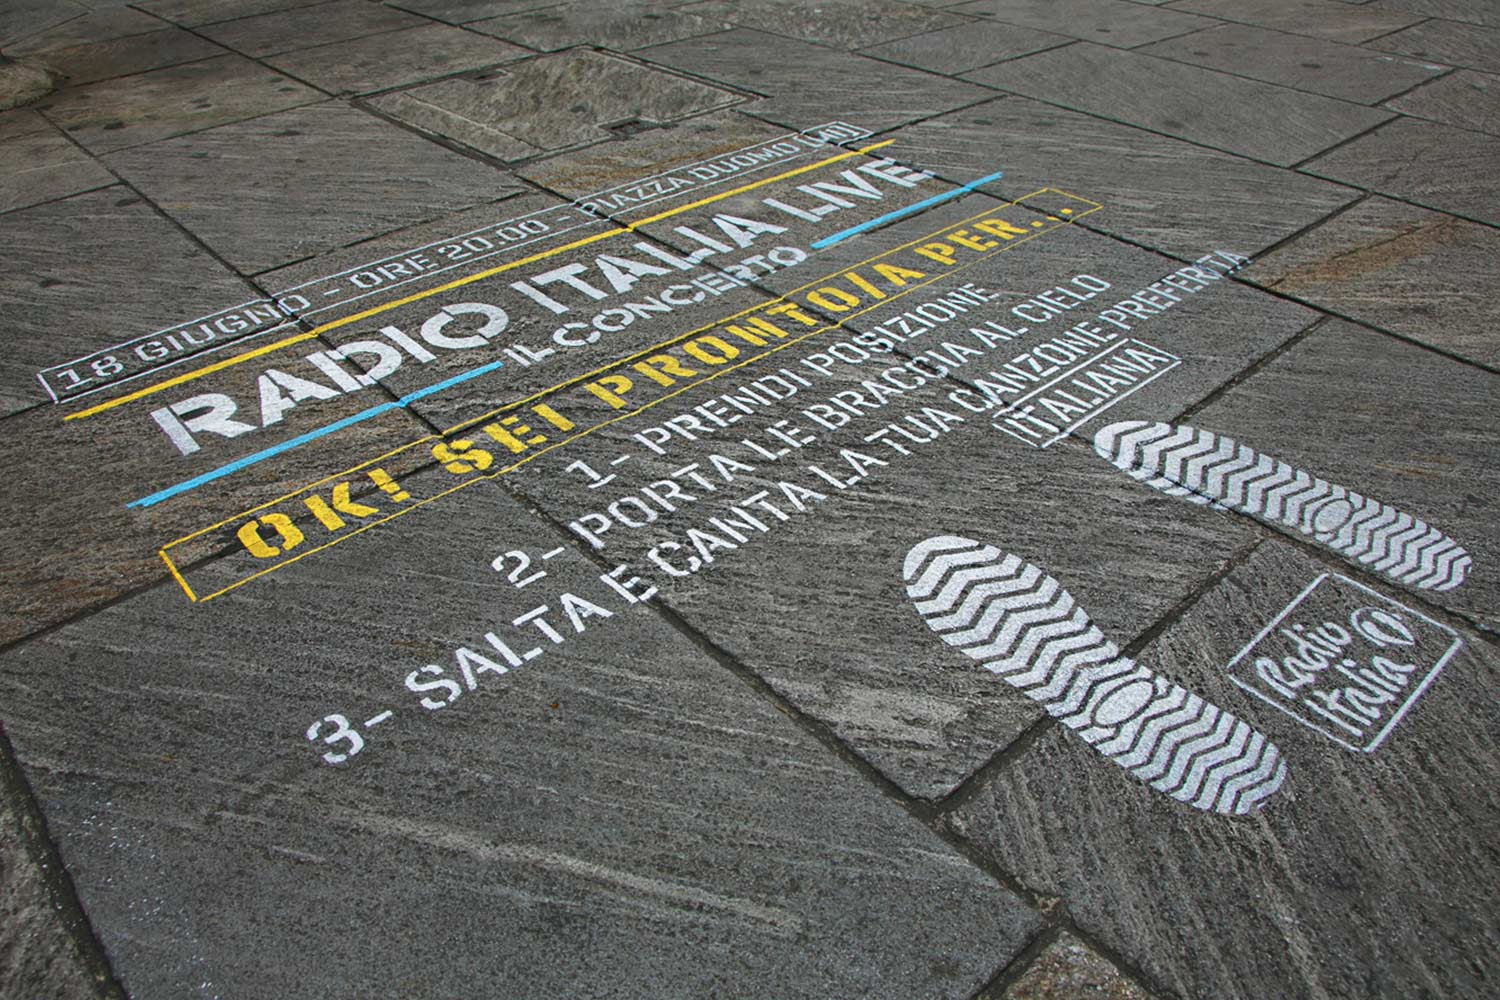 street marketing radio italia concerto duomo